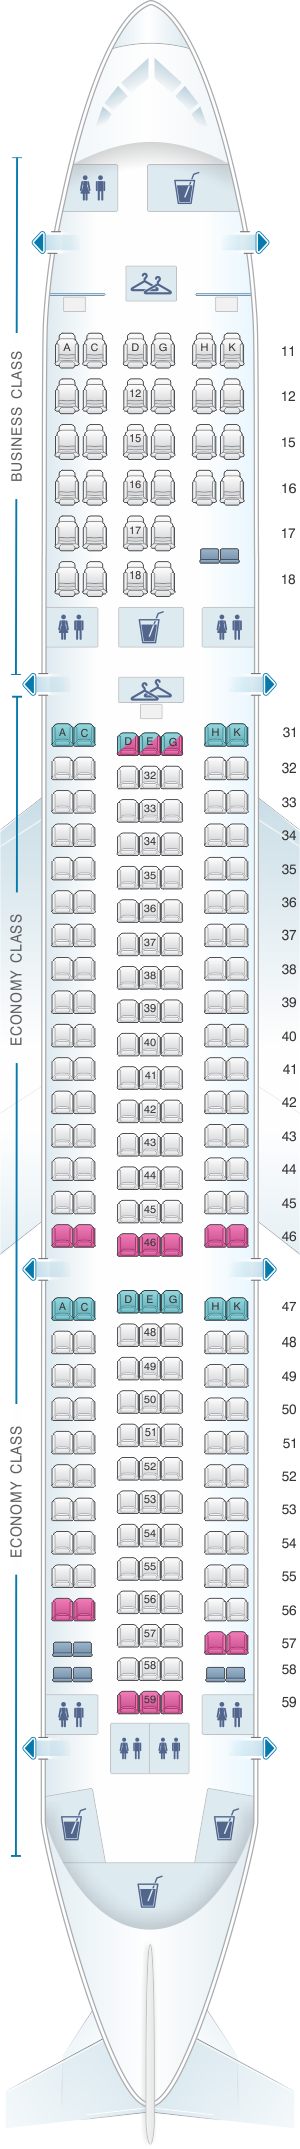 Seat map for Hainan Airlines Boeing B767 300